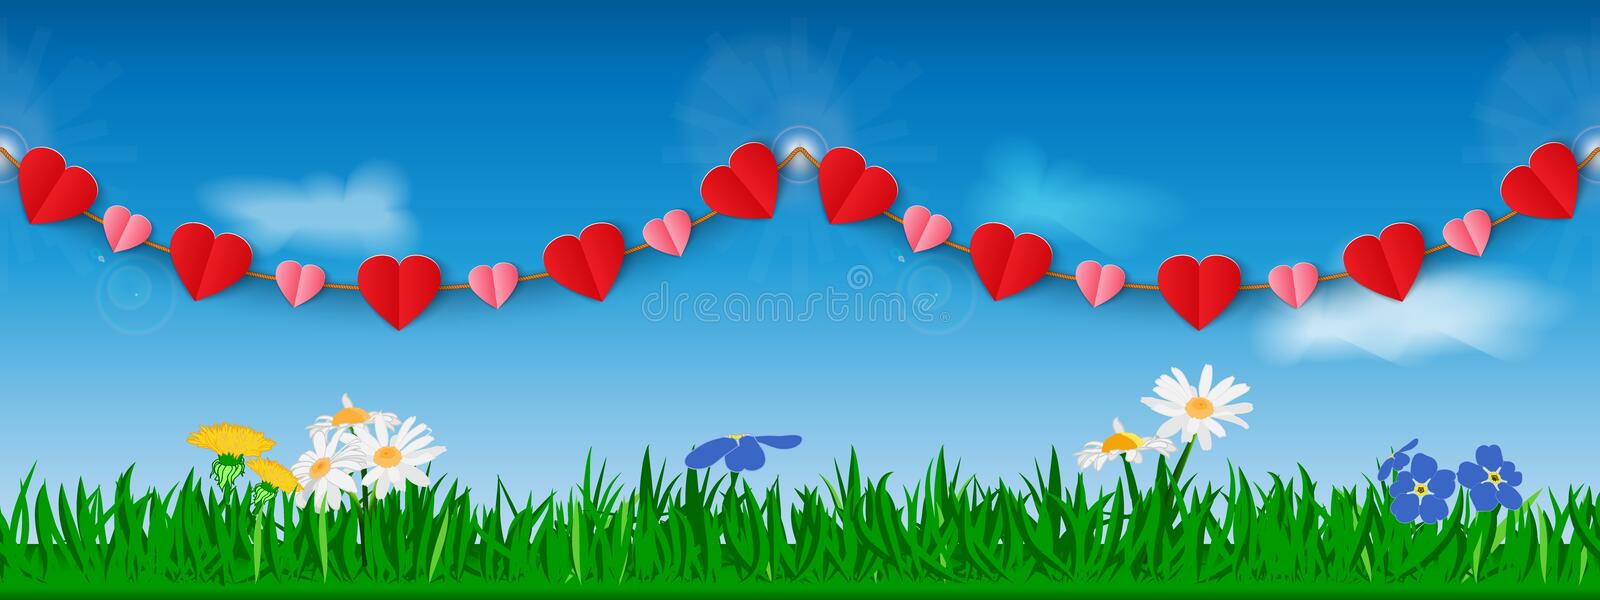 Seamless horizontal garland of red and pink paper hearts against the background of grass, flowers and sky. Template for site heade vector illustration